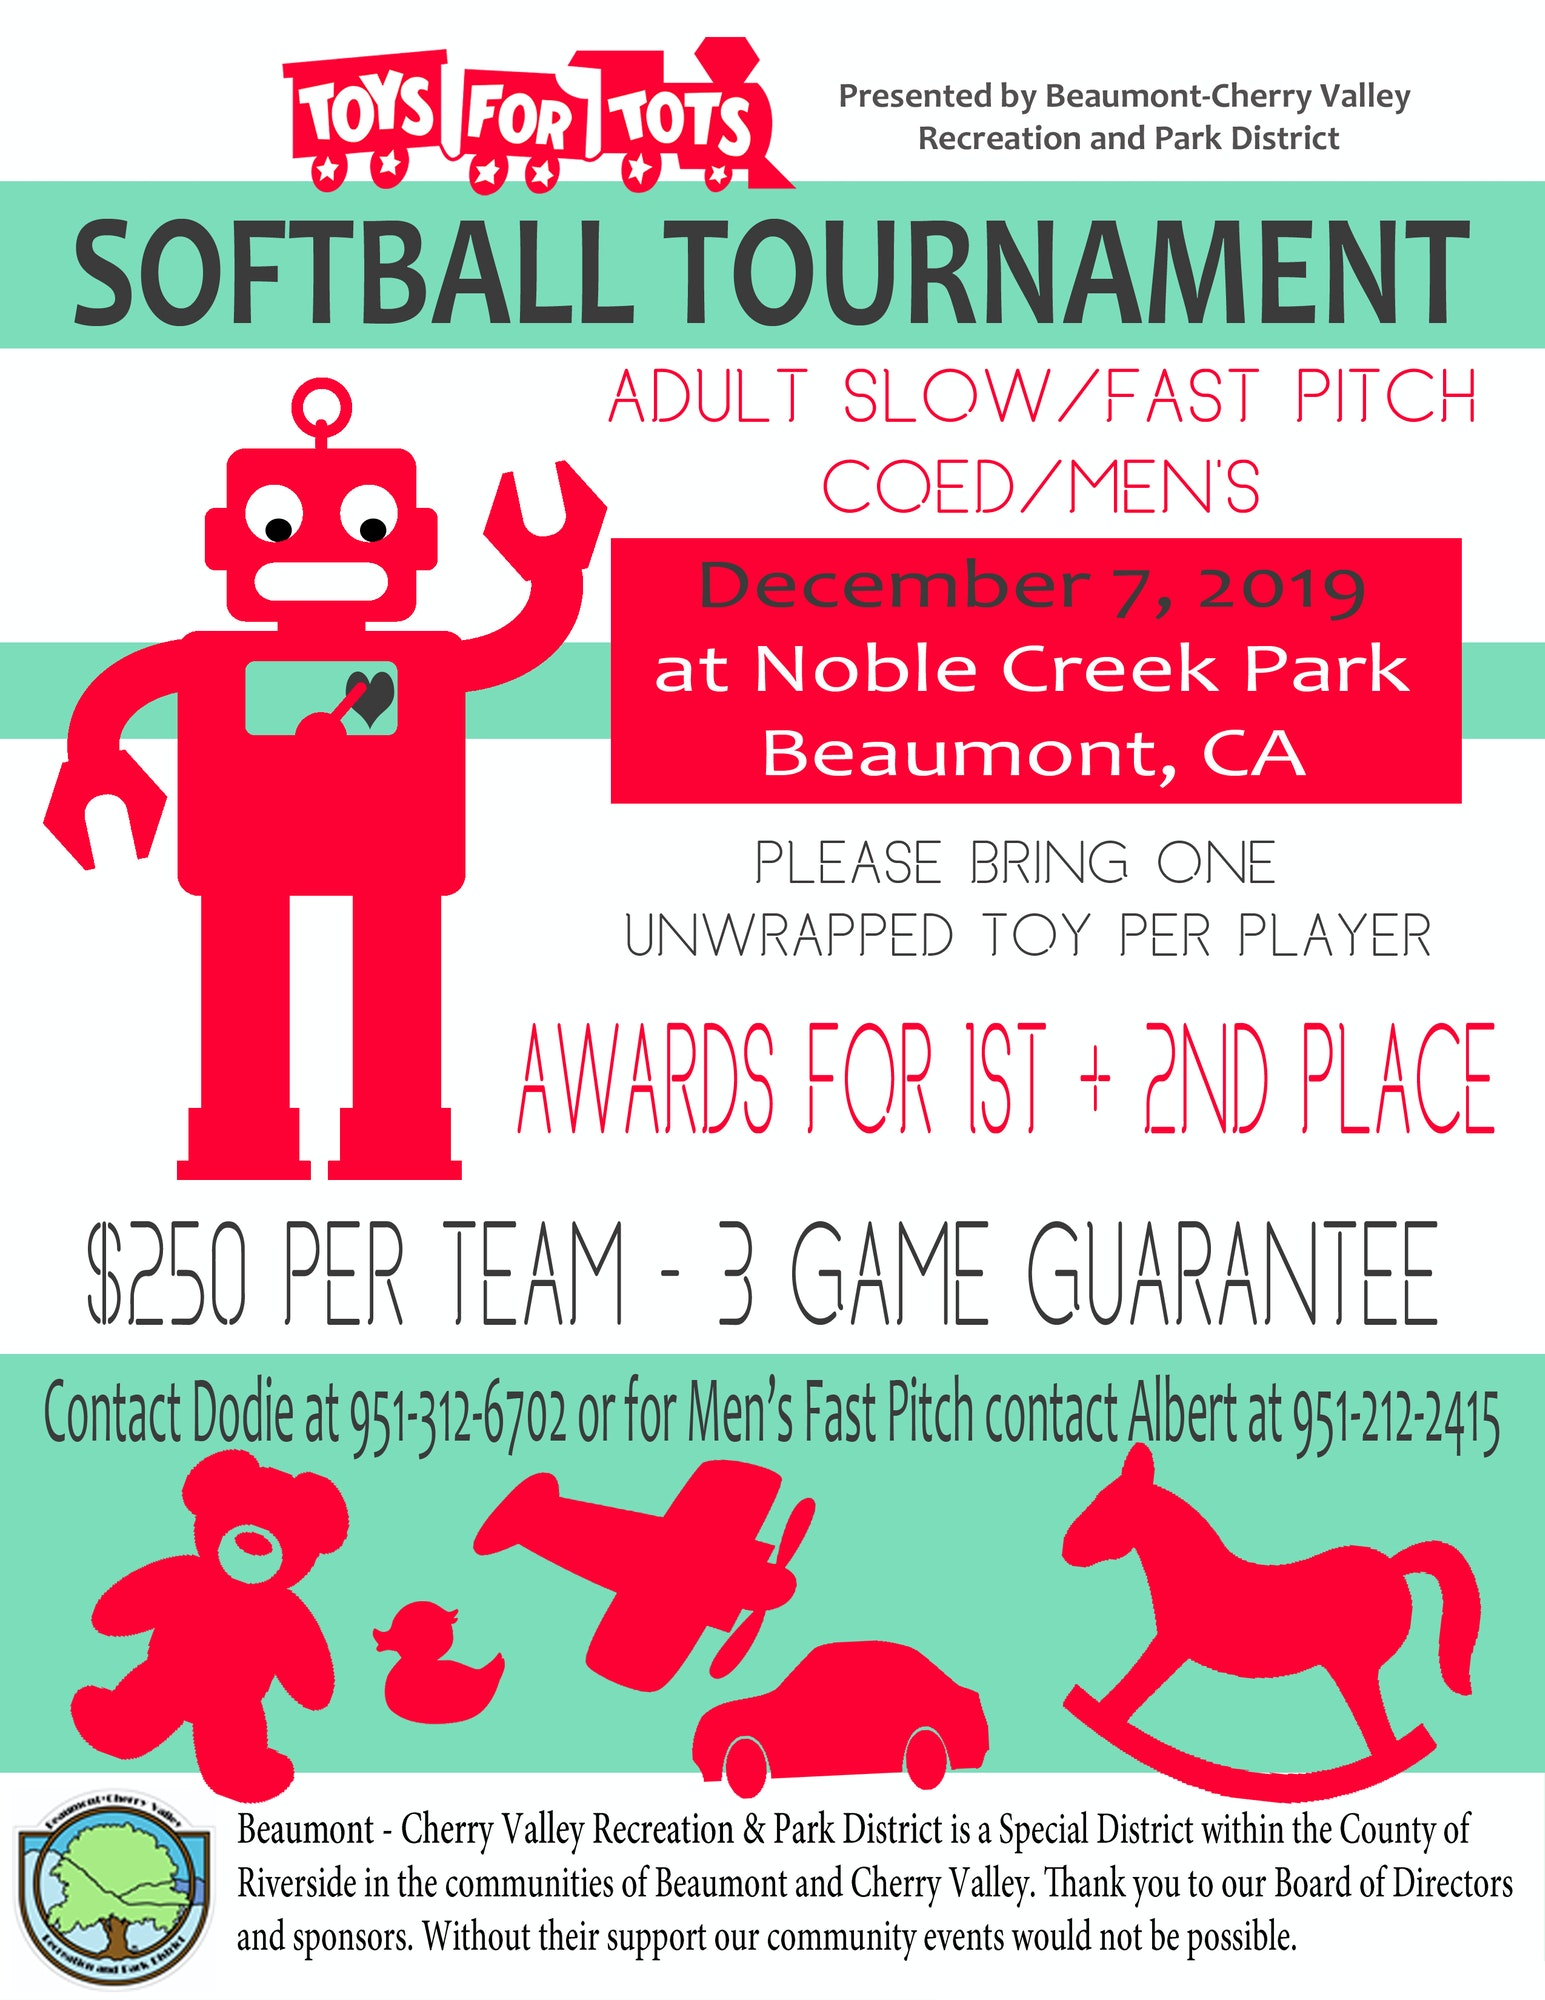 Toys for Tots Co-ed Slow/Mens  Fastpitch Tournament. $250 per team-3 game guarantee. Please bring one unwrapped toy per player. Contact Dodie at 951-312-6702 for Slow pitch and Albert at 951-212-2415 for Fastpitch.